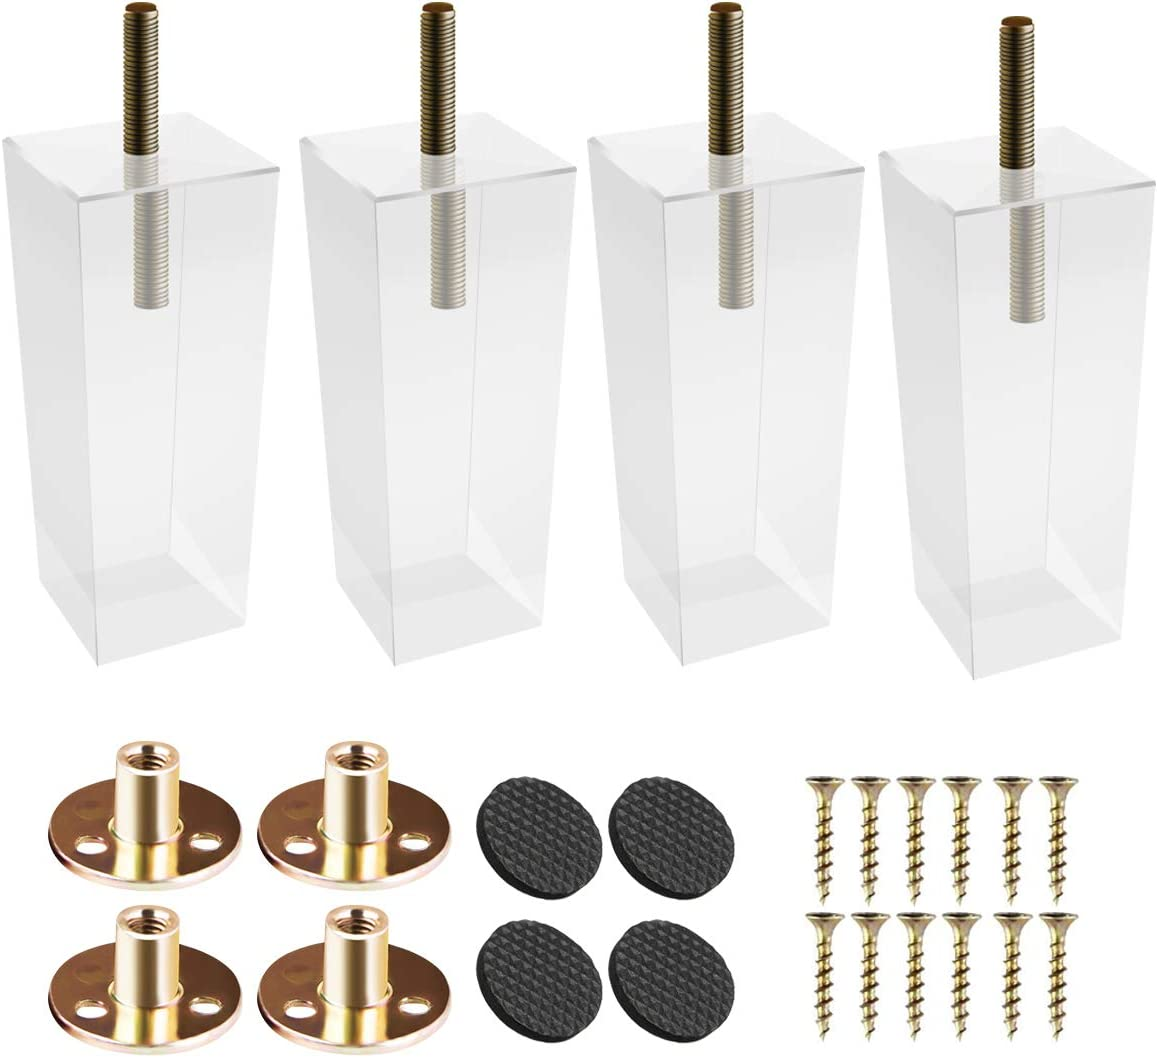 6 inch / 15cm Acrylic Furniture Legs, La Vane 4PCS Pyramid Clear Glass DIY M8 Replacement Furniture Feet with Pre-Drilled 5/16 Inch Bolt & Mounting Plate & Screws for Bookcase Table Cabinet